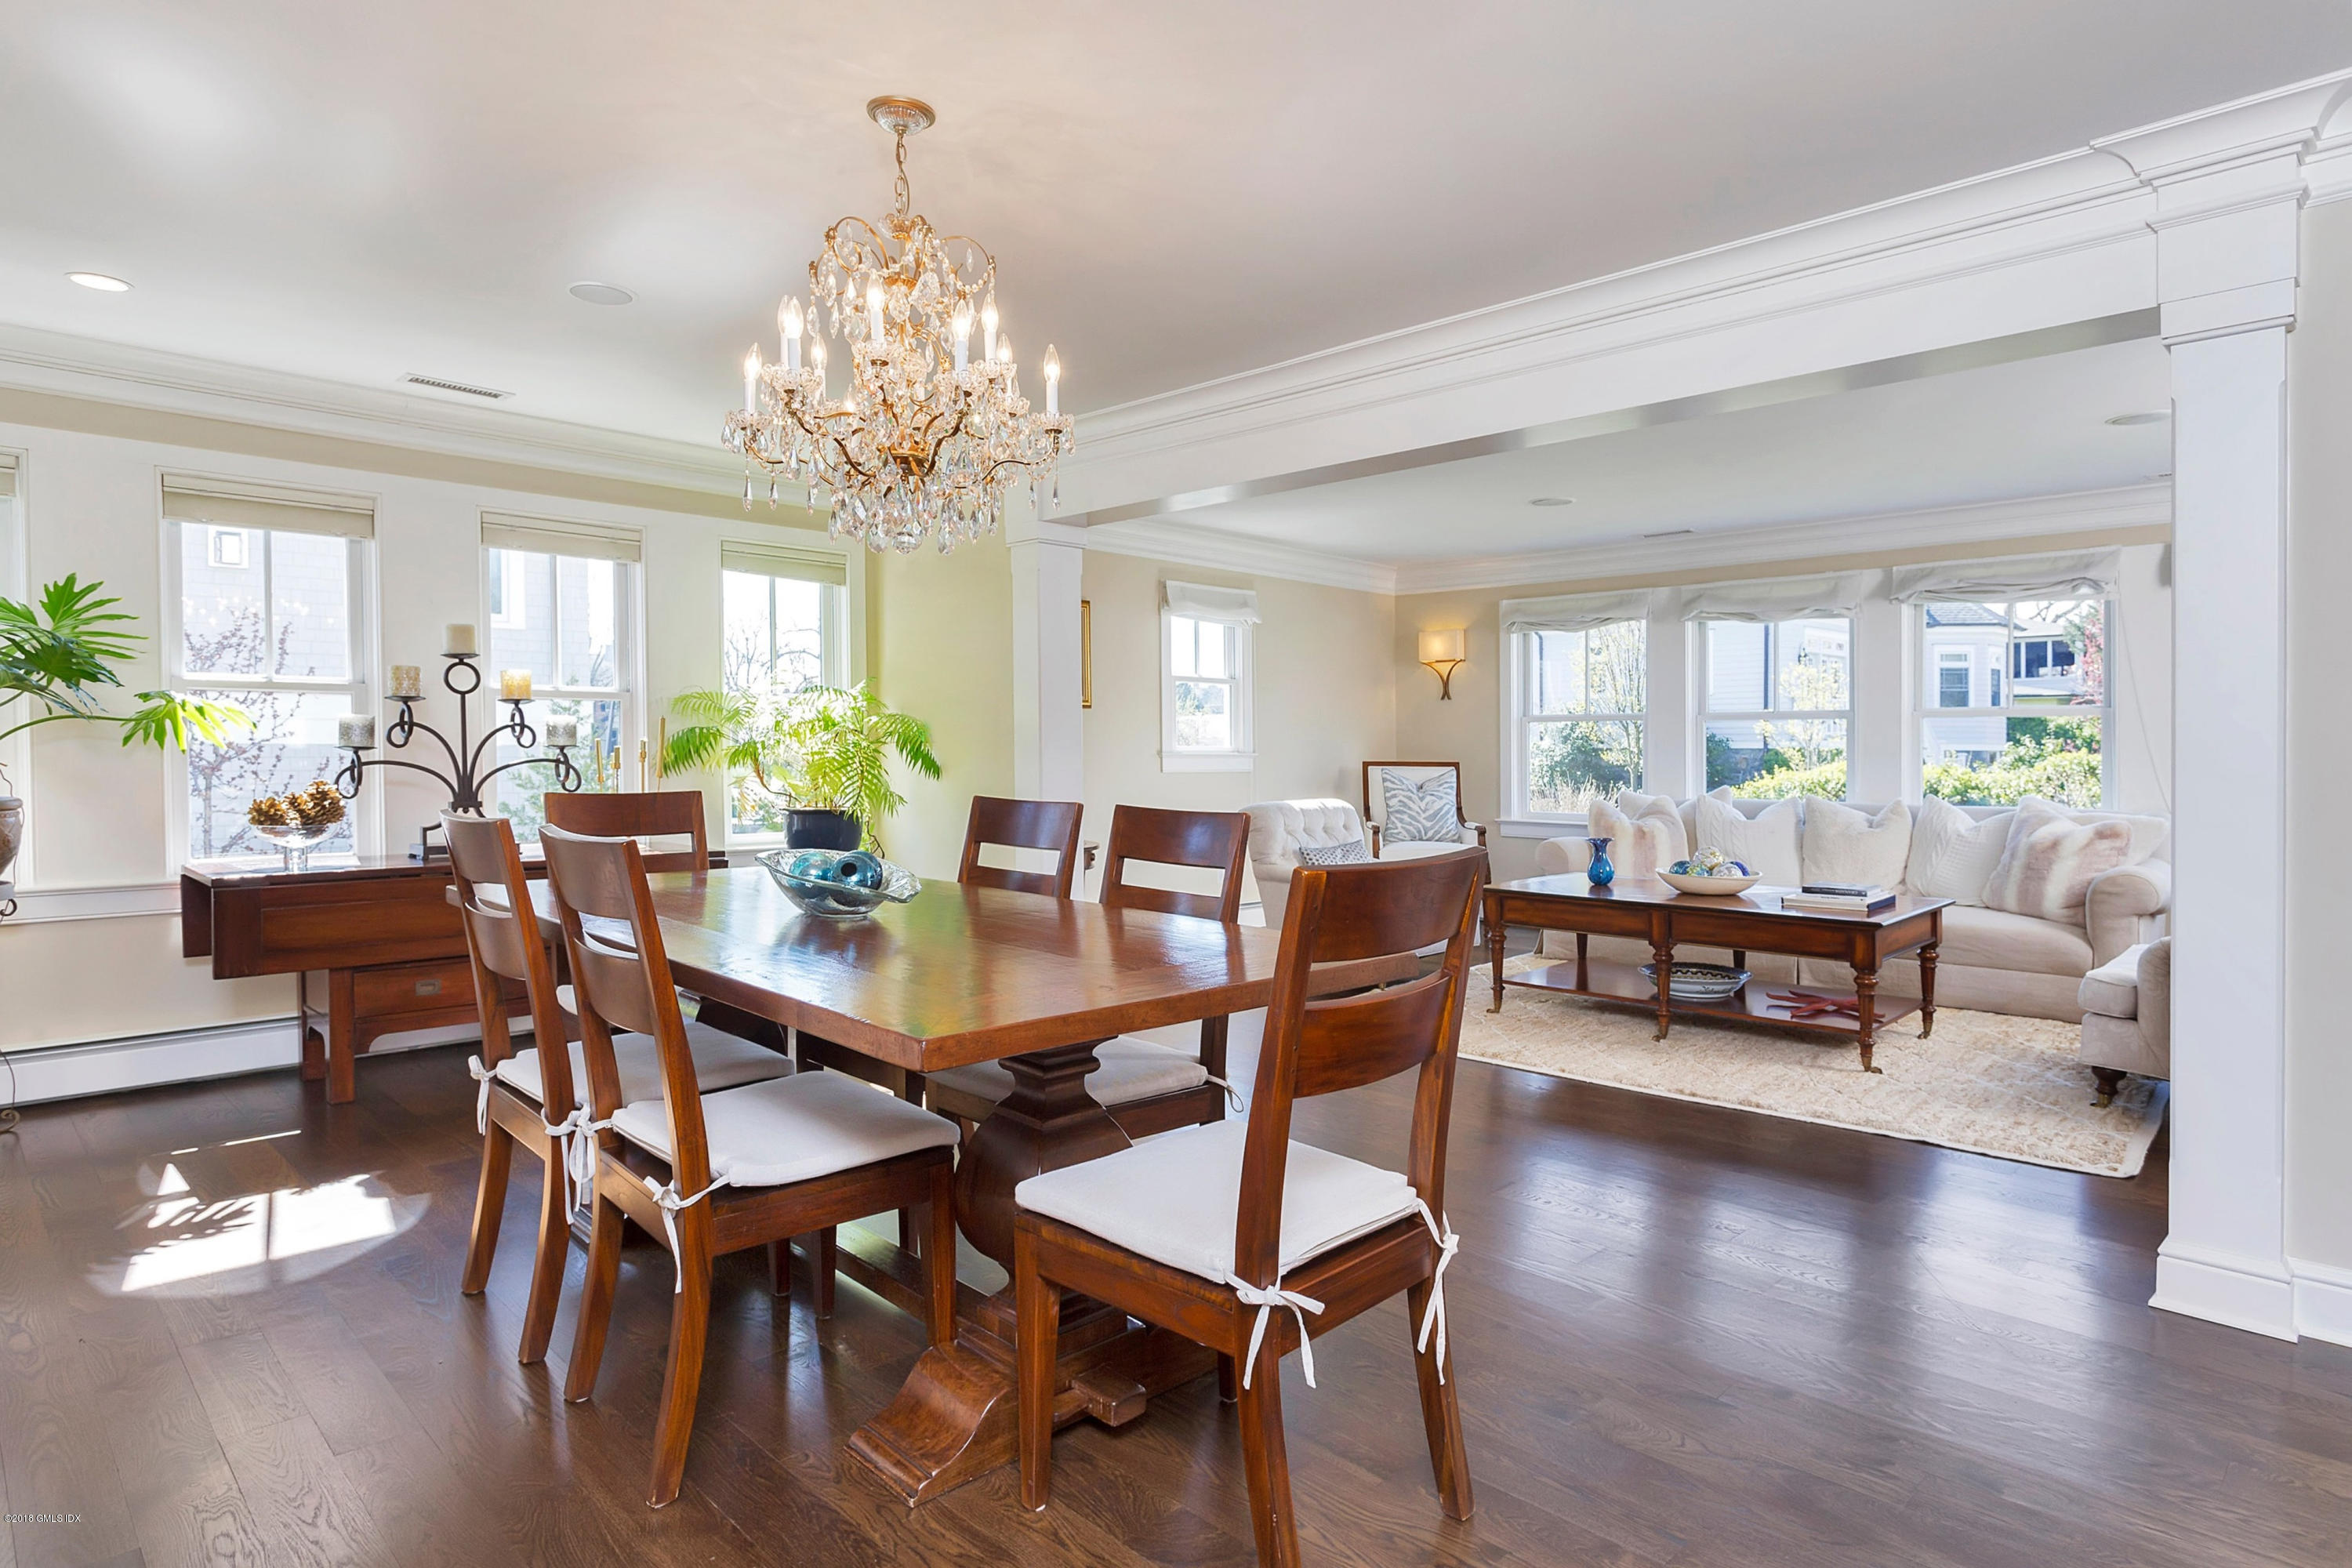 7 Lighthouse Lane, Old Greenwich, CT 06870